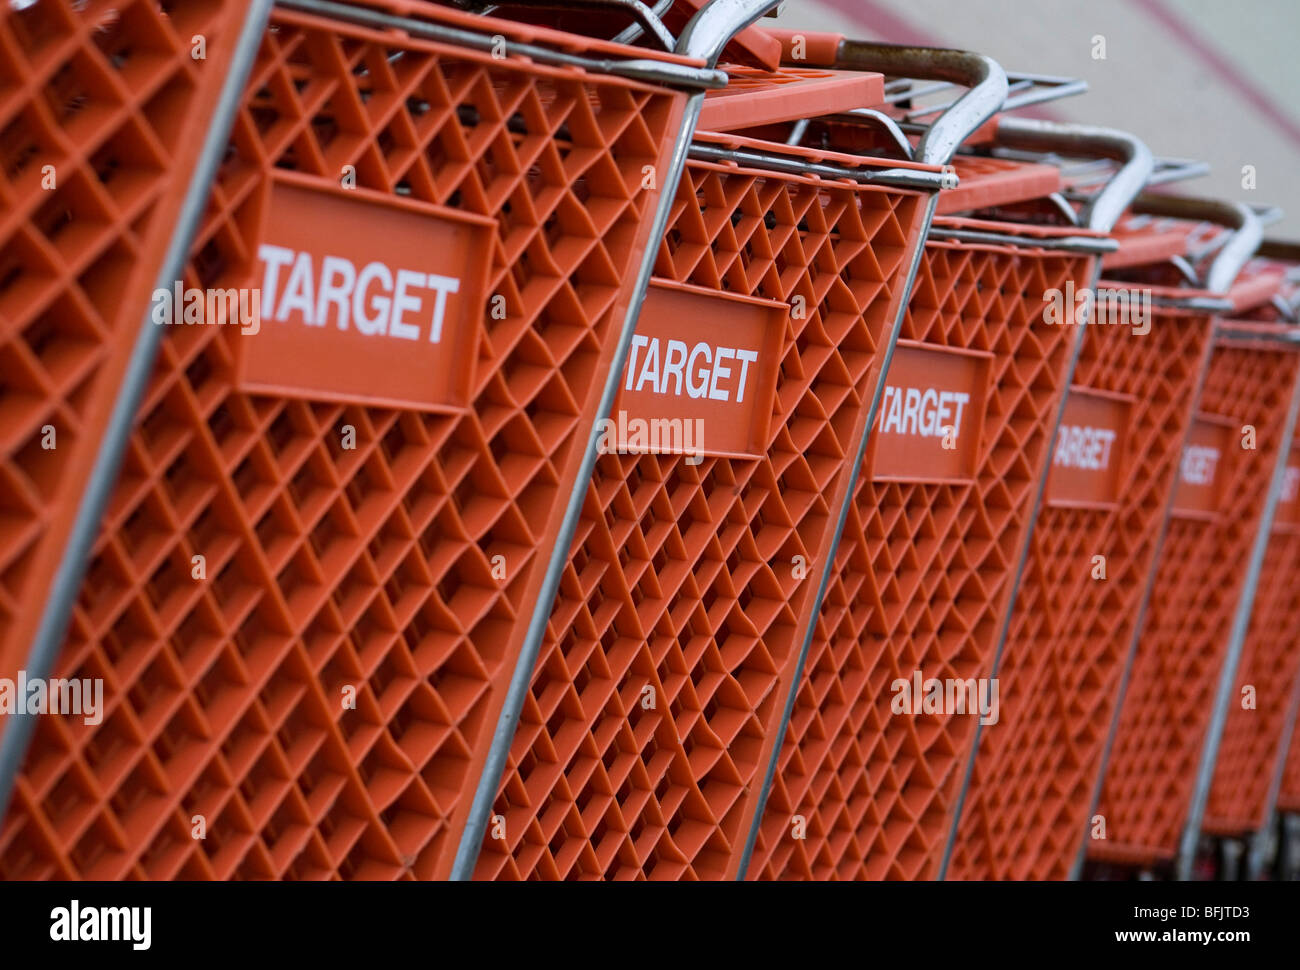 A Target retail location in suburban Maryland.  - Stock Image